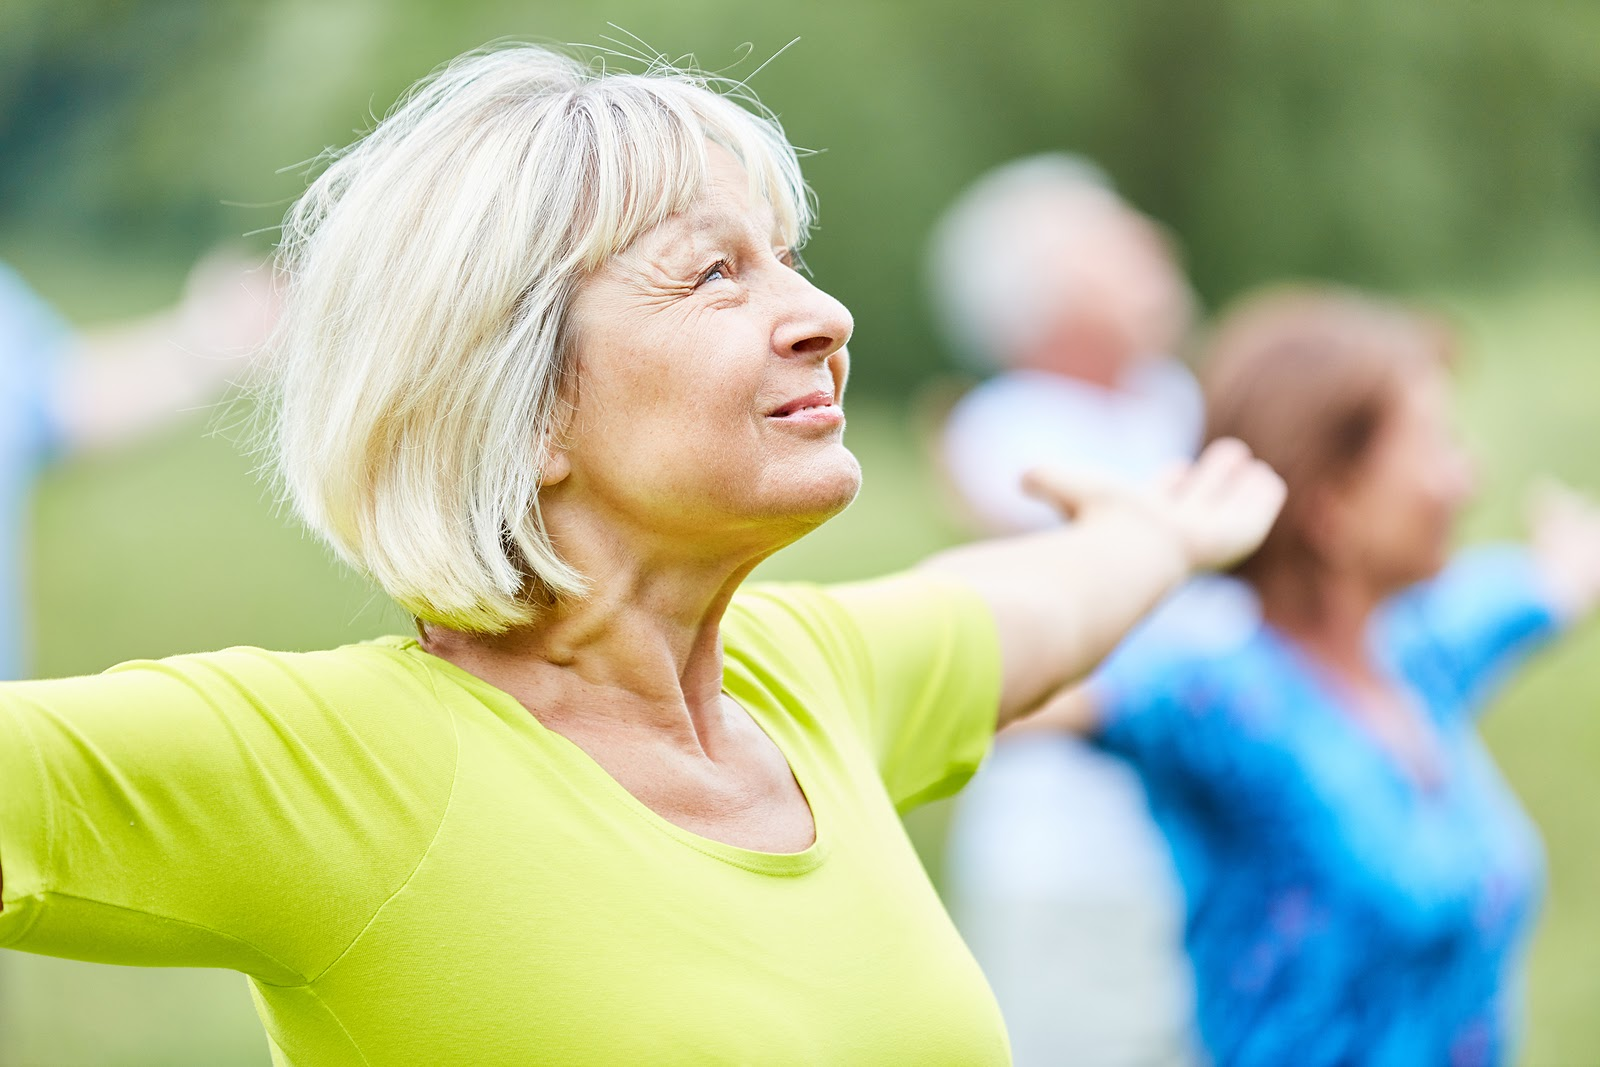 Elderly woman enjoying a group exercise call for keeping seniors active